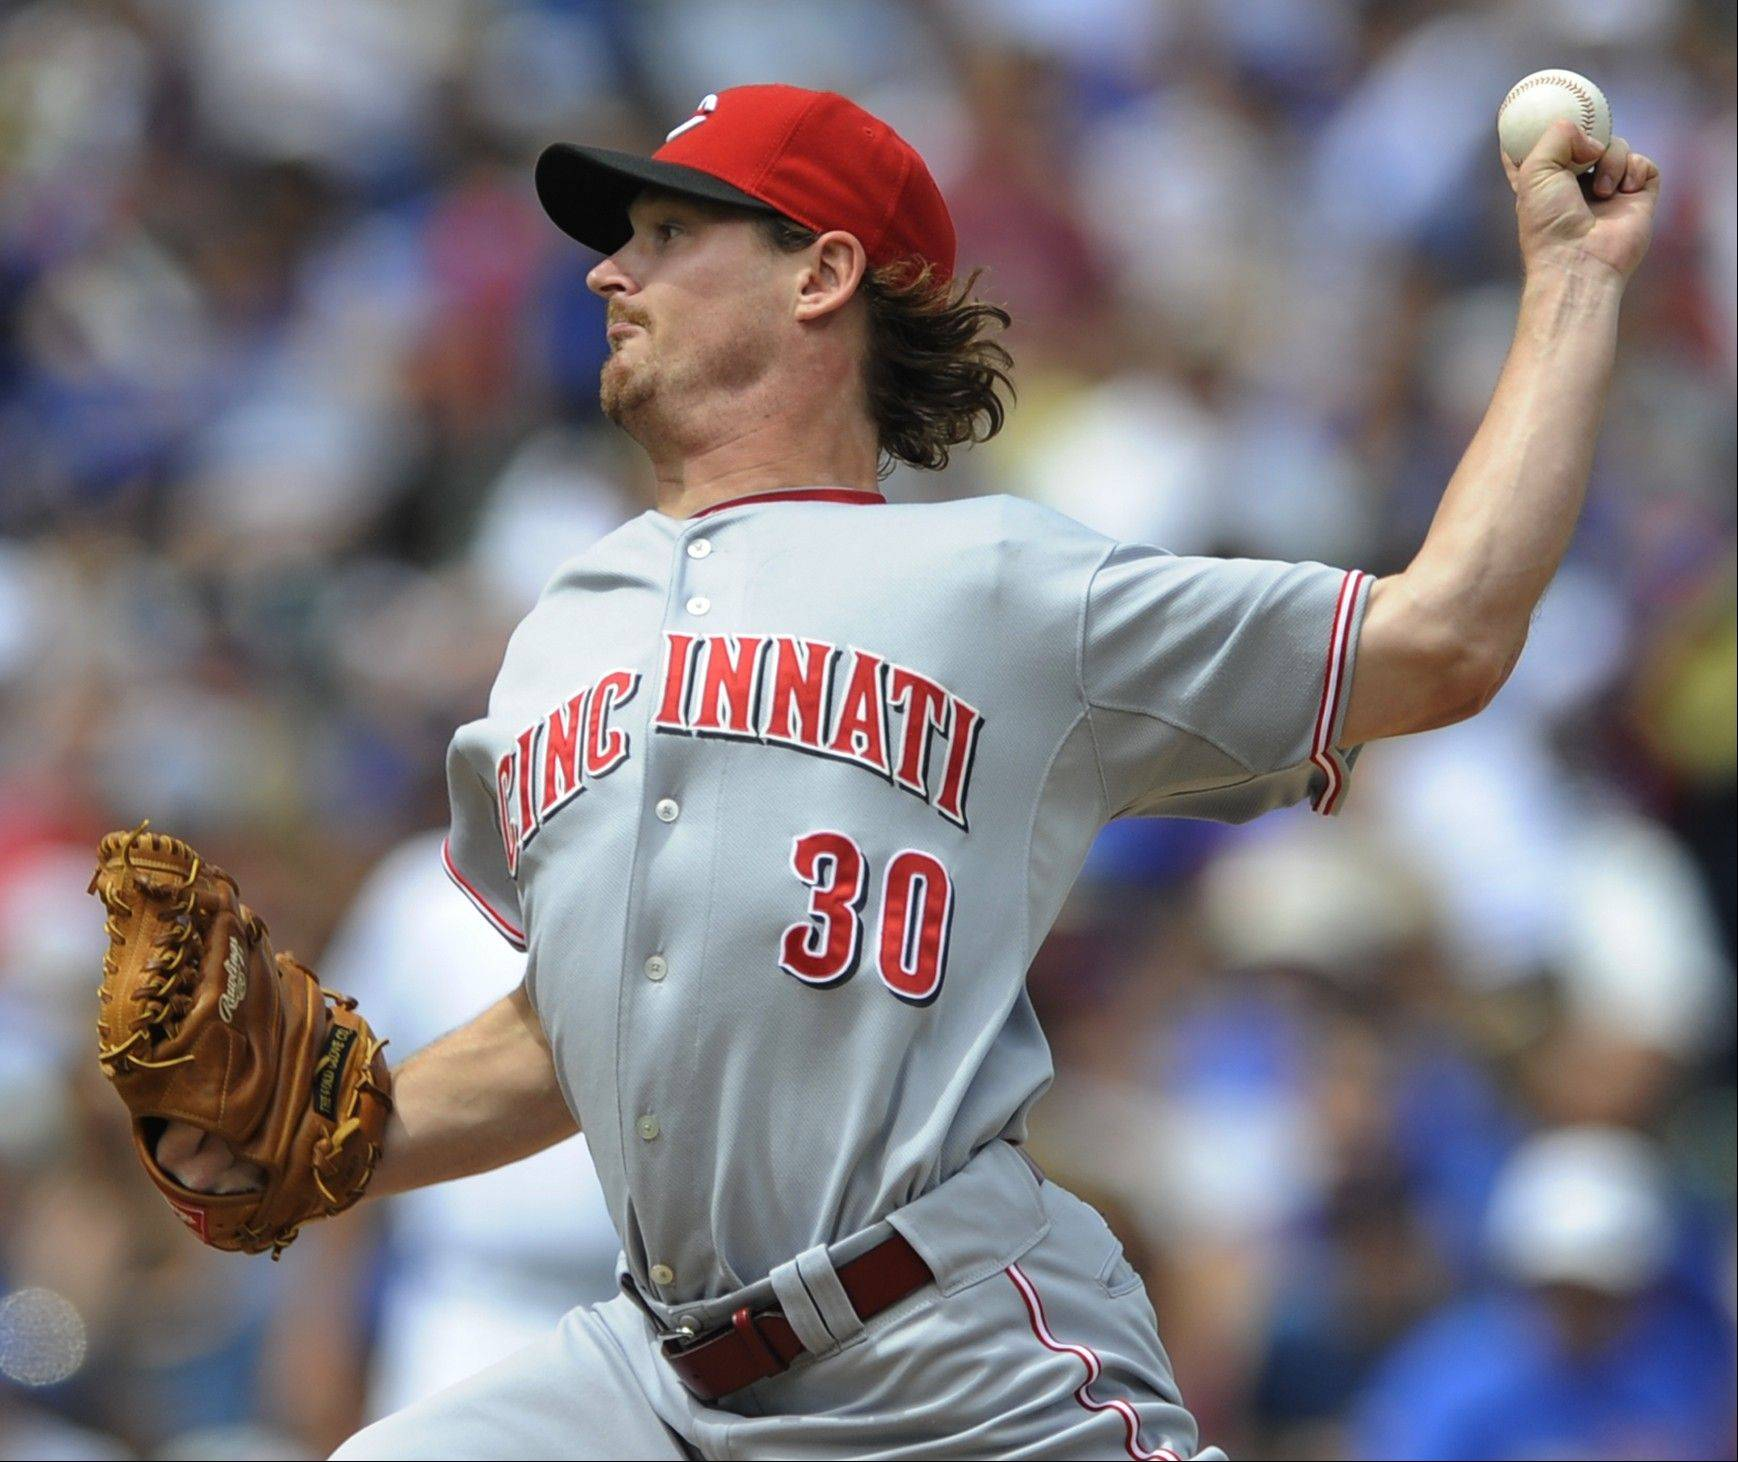 Reds starter Travis Wood, who made his major-league debut against the Cubs in 2010, was acquired by the Cubs on Friday along with two prospects in exchange for lefty reliever Sean Marshall. The Reds had no room in their rotation for Wood, but the rebuilding Cubs needed a lefty.